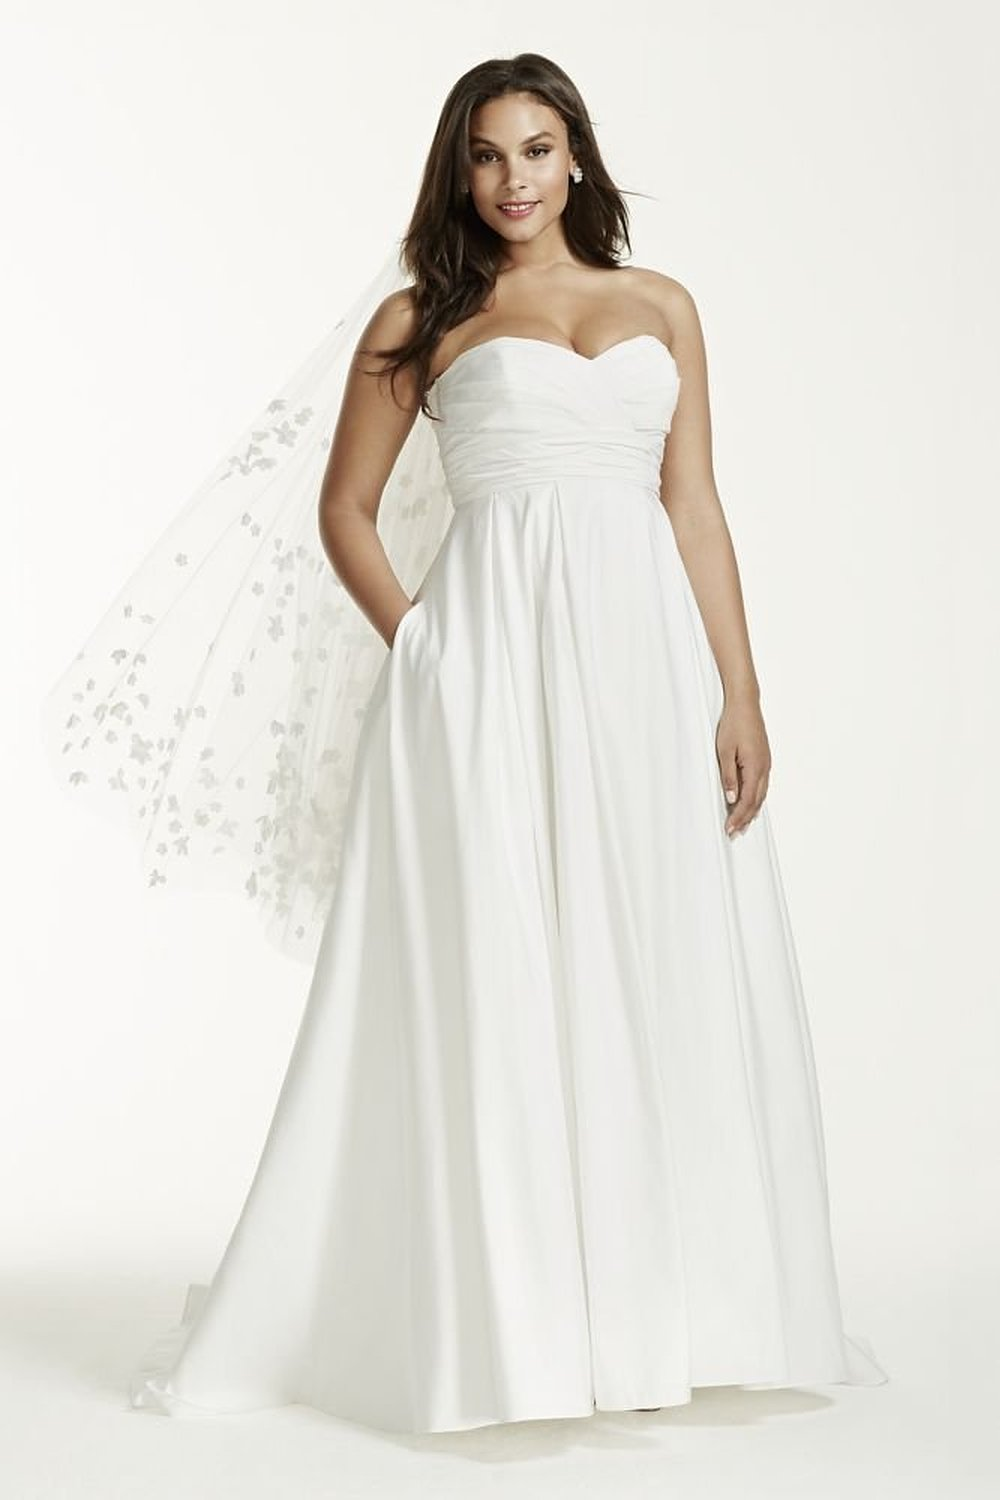 Plus size bridesmaid dresses in houston